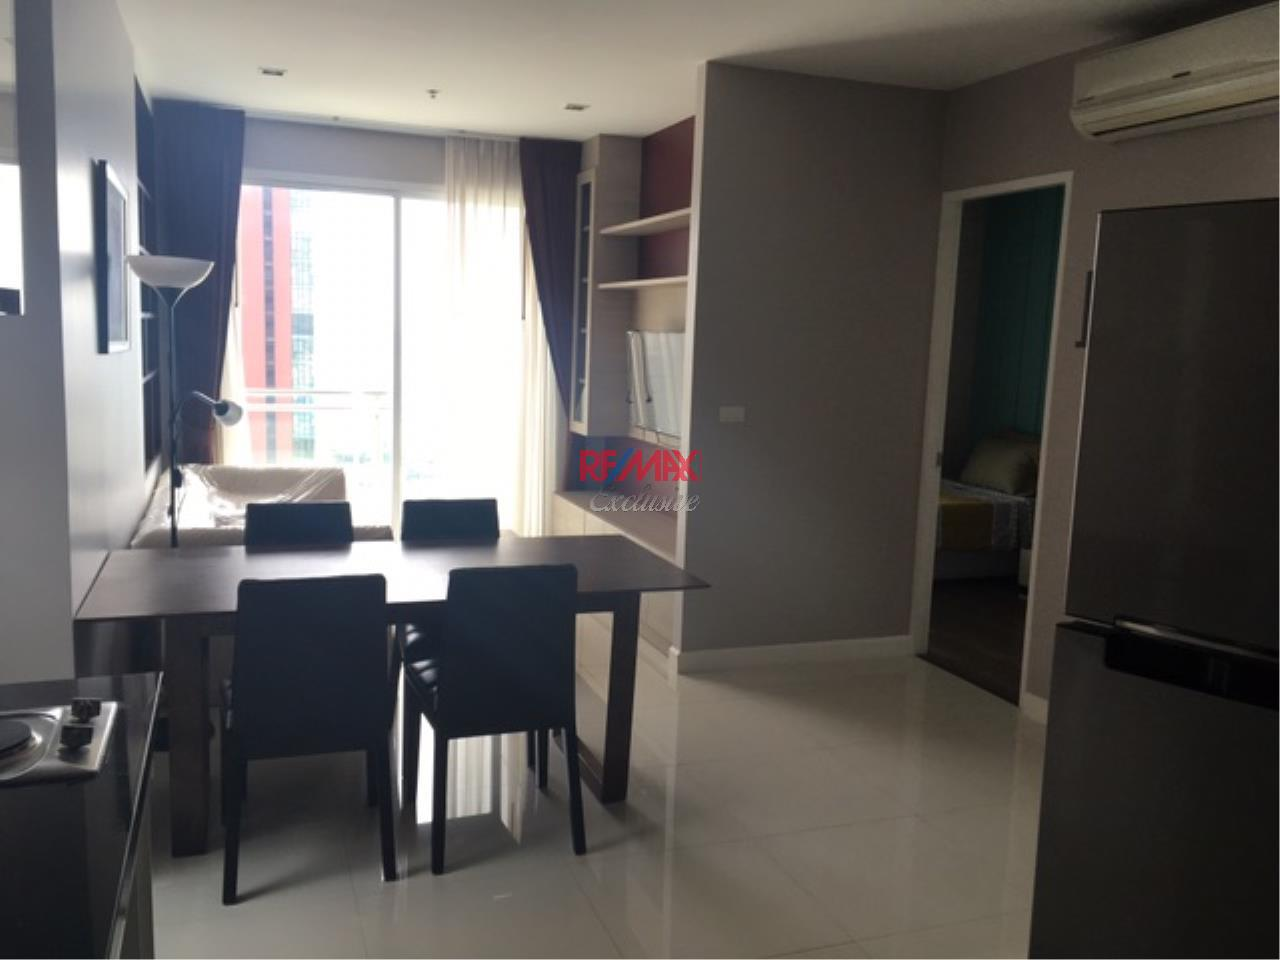 RE/MAX Exclusive Agency's The BLOOM, Sukhumvit 71.,2 Bedroom, 59 Sqm., Fully-Furnished, EXCLUSIVE UNIT, TOP FLOOR for RENT !! 2